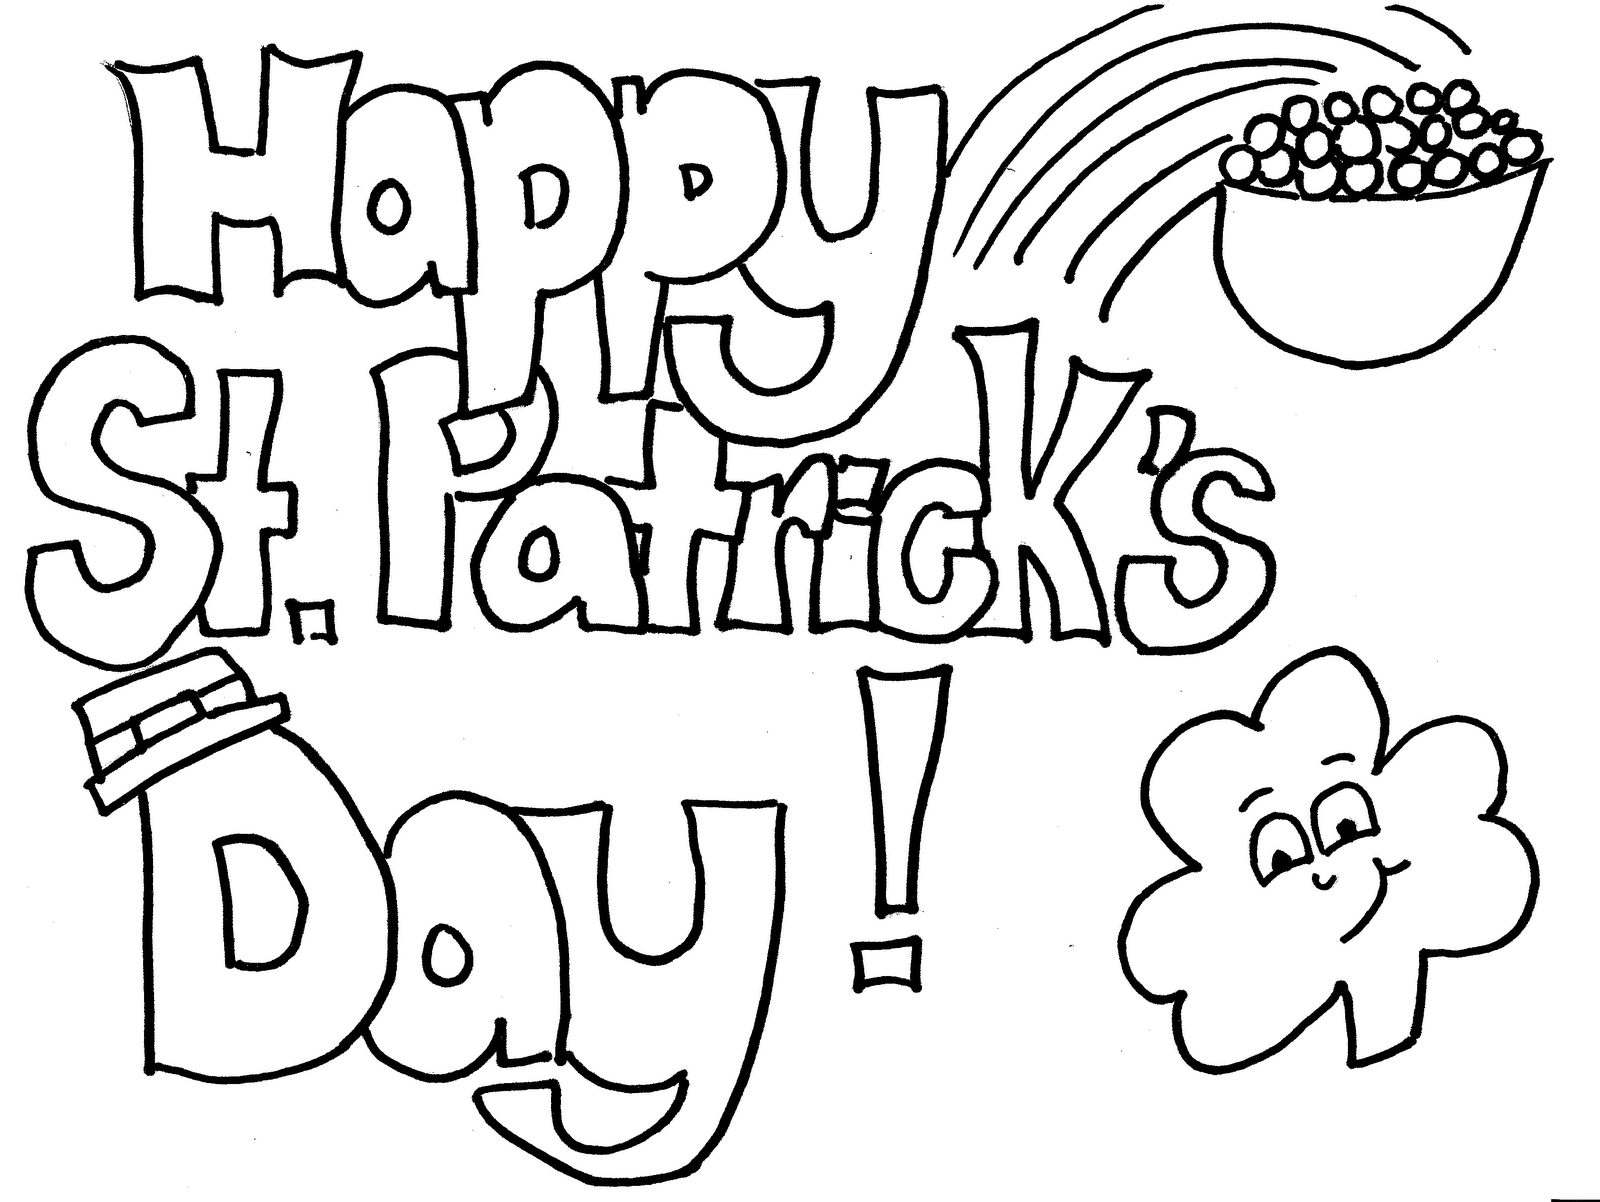 St. Patrick's Day coloring #7, Download drawings